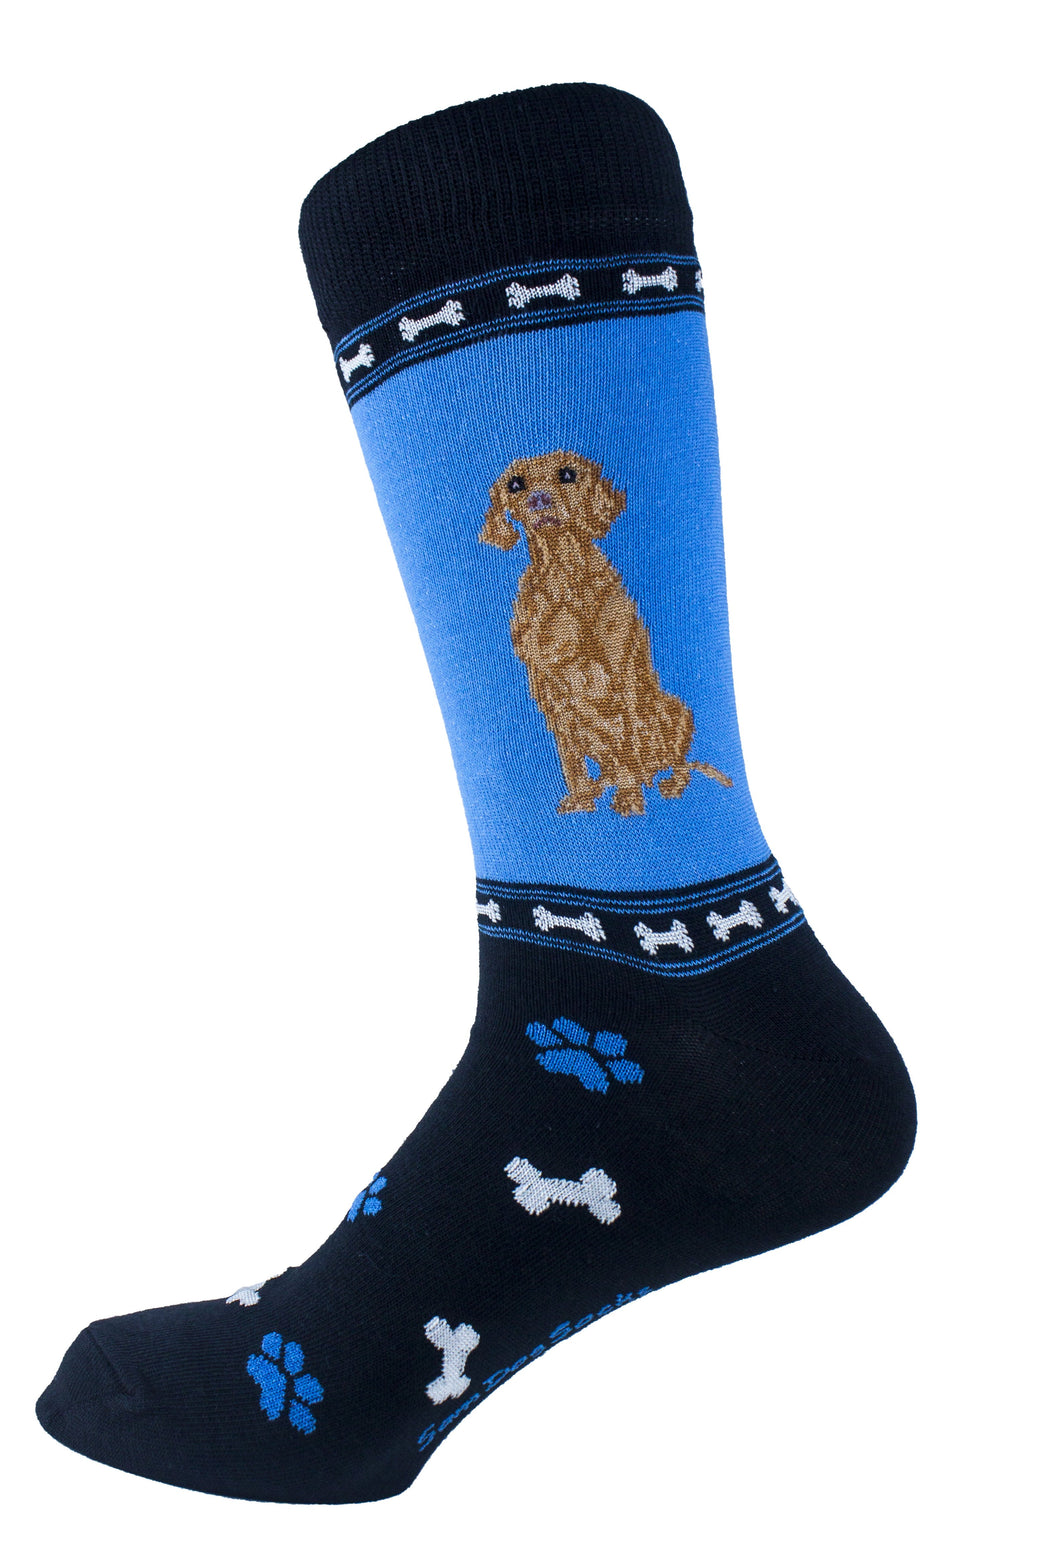 Vizsla Dog Socks Mens Signature